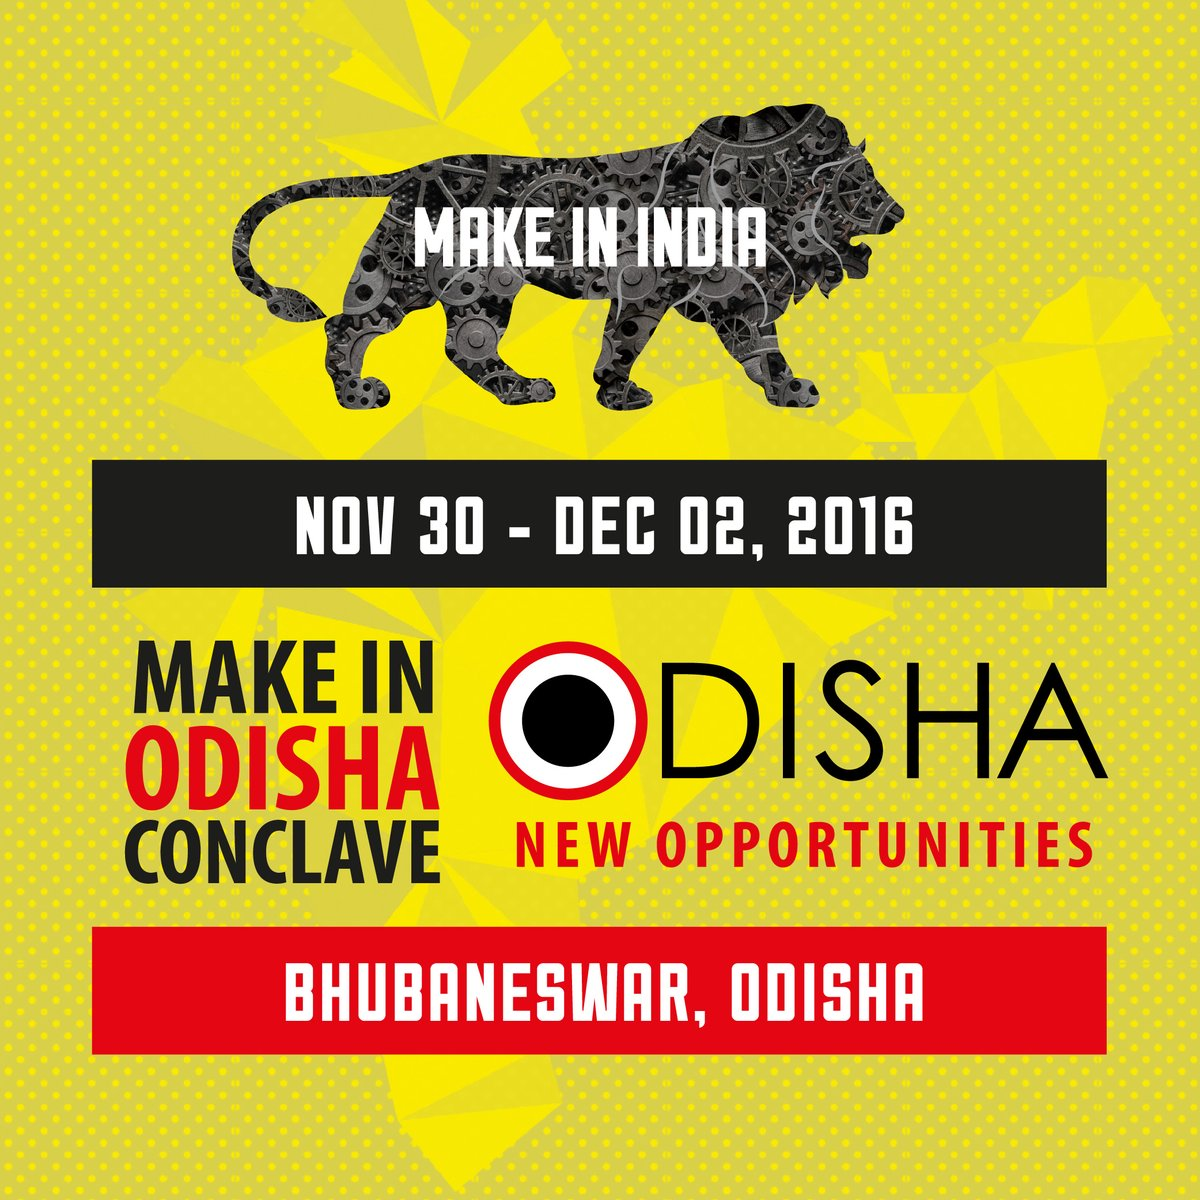 make in odisha conclave bhubaneswar buzz 6